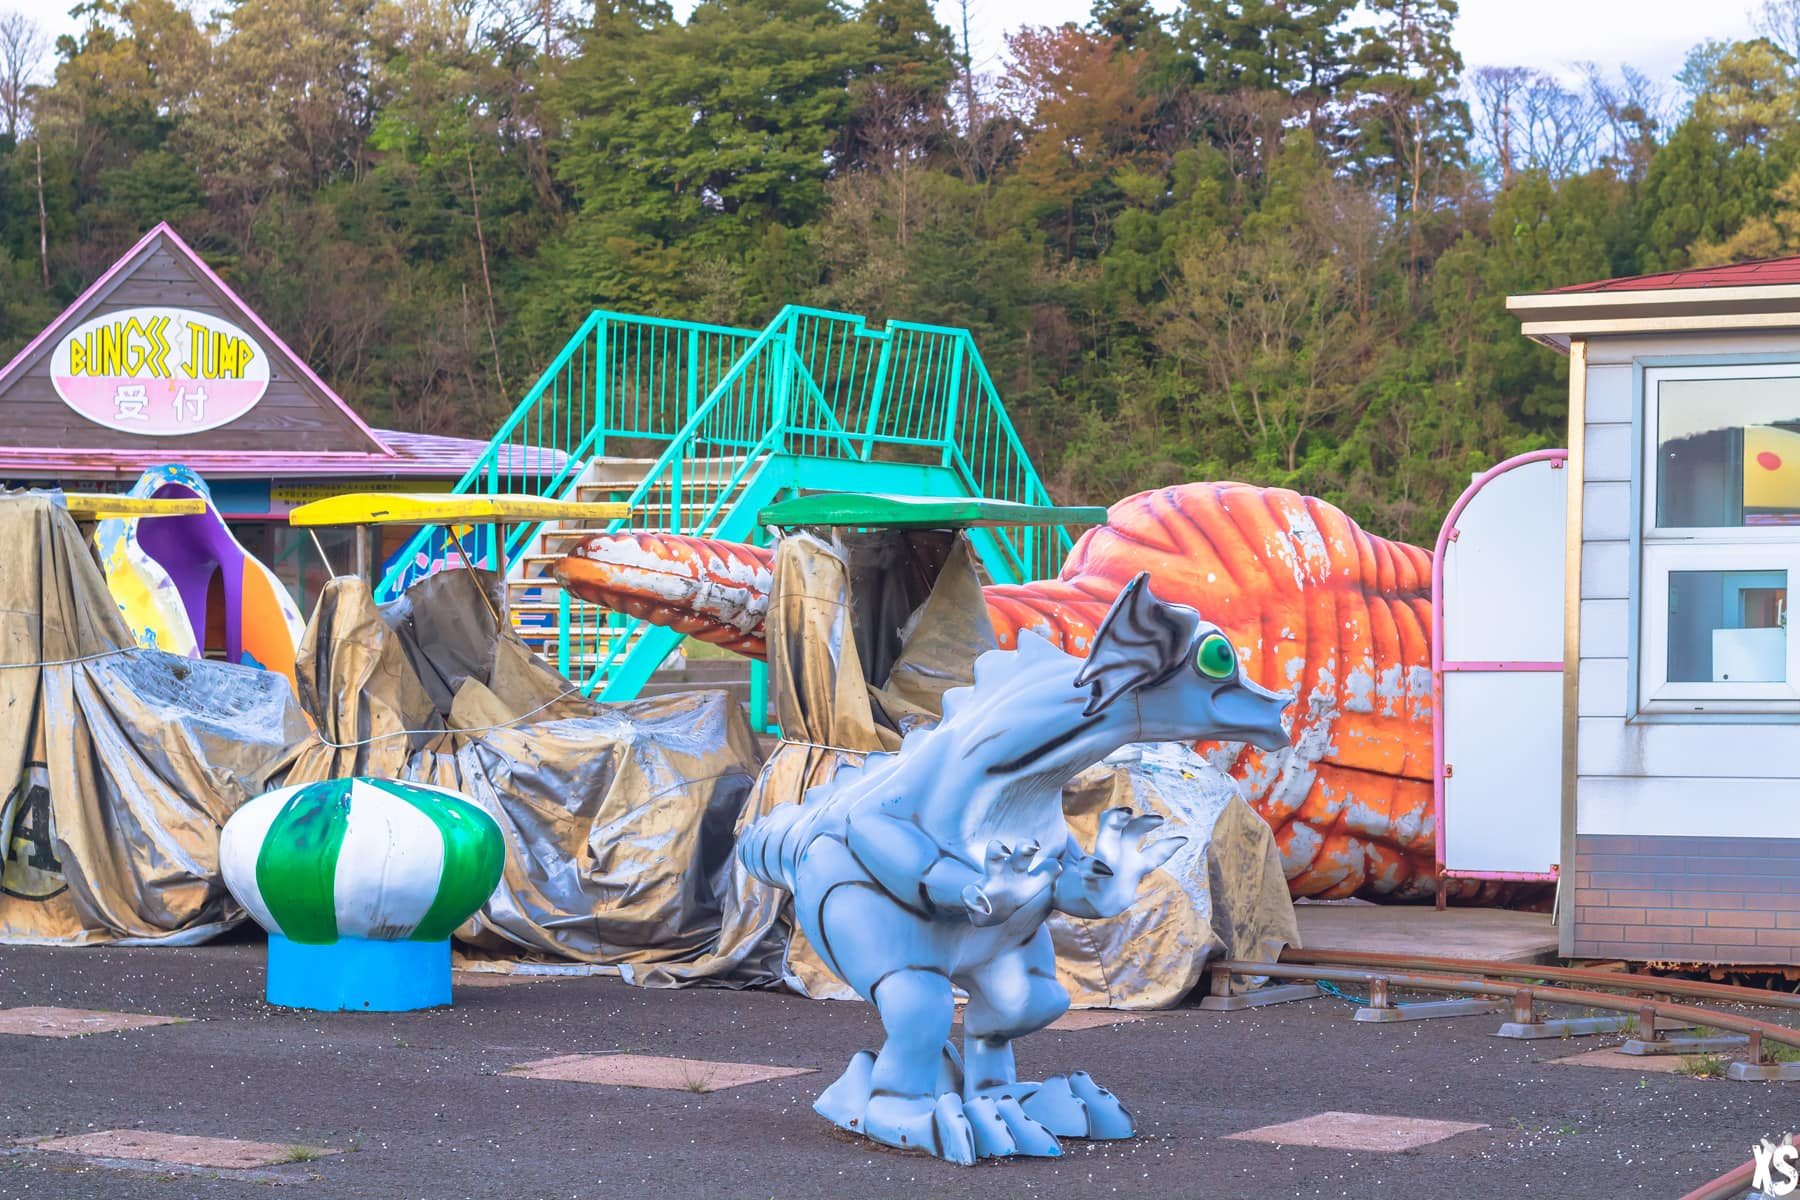 Wonderland - Parc d'attractions abandonnés au Japon : https://urbexsession.com/wonderland